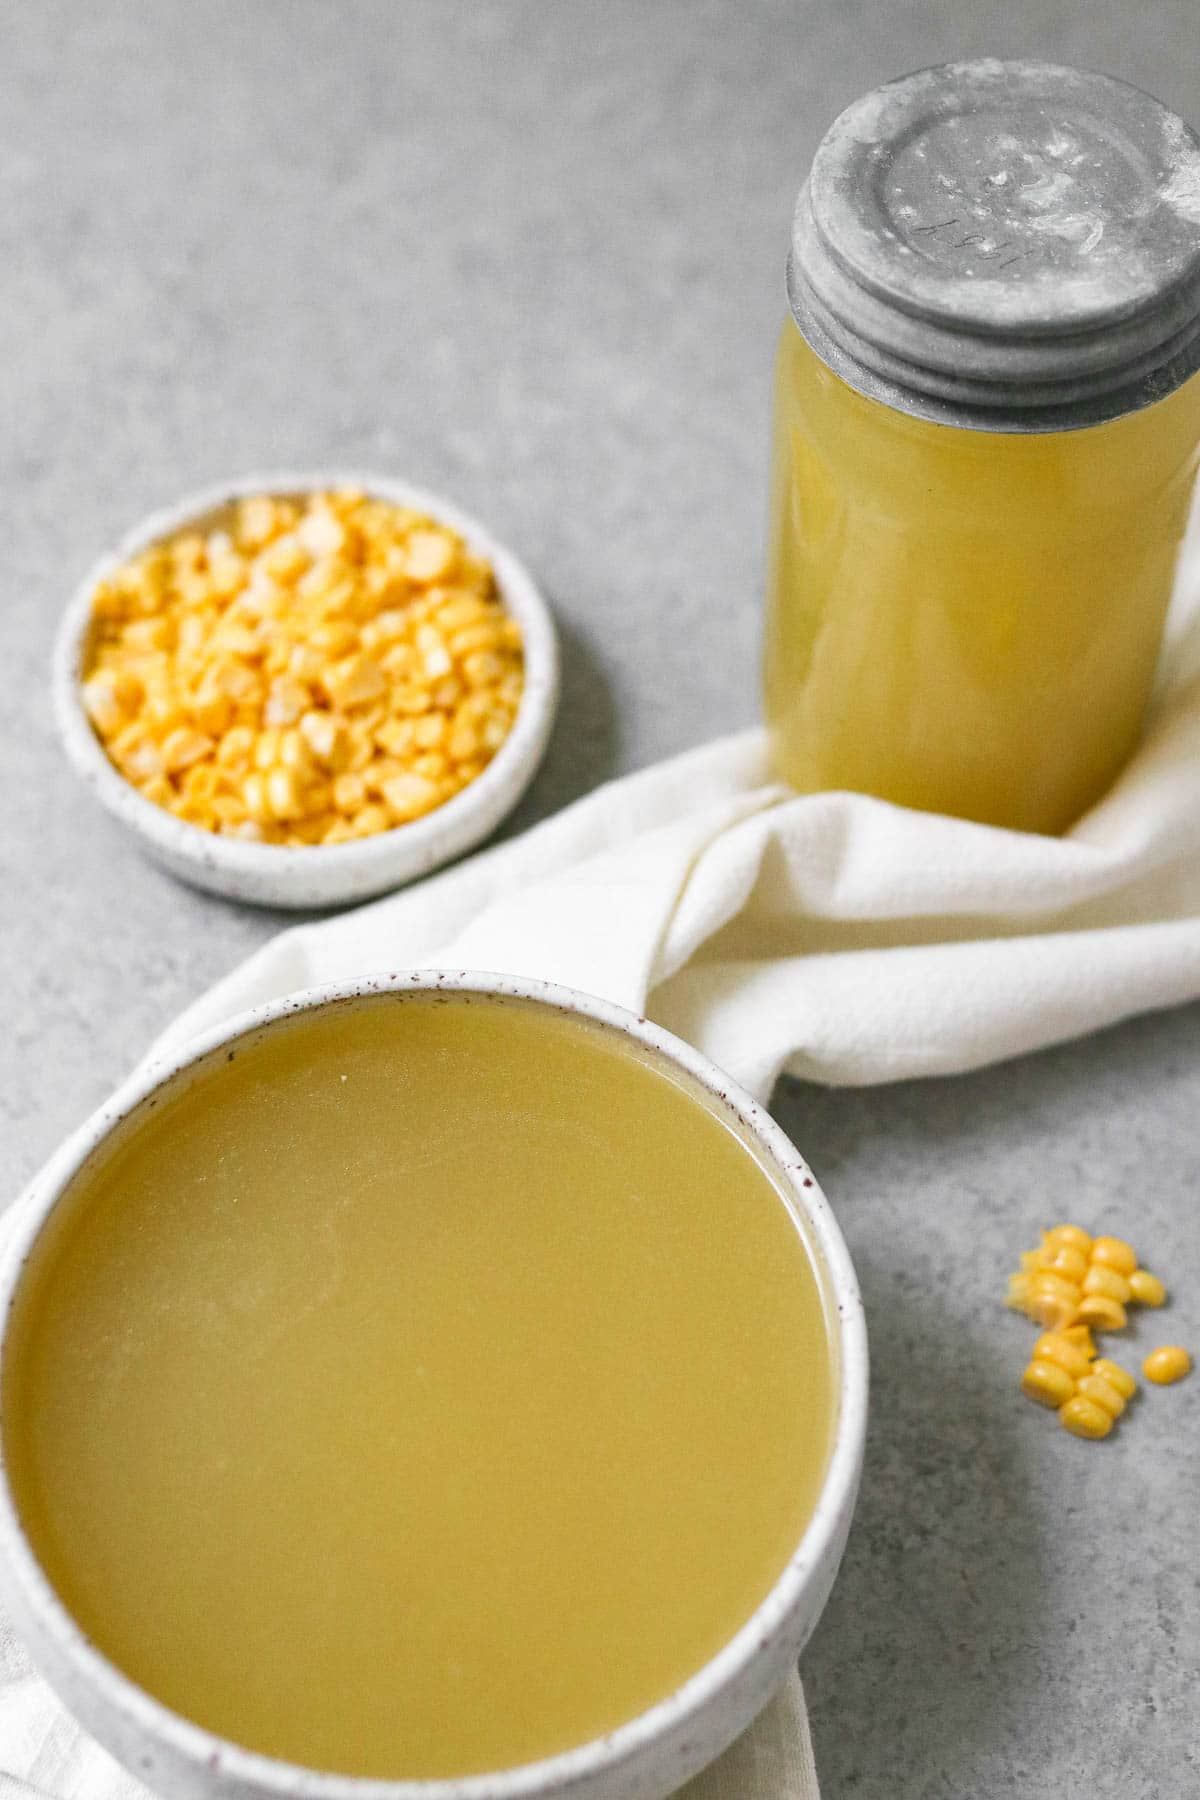 Photo of corn stock in a bowl and in a jar with corn in the background